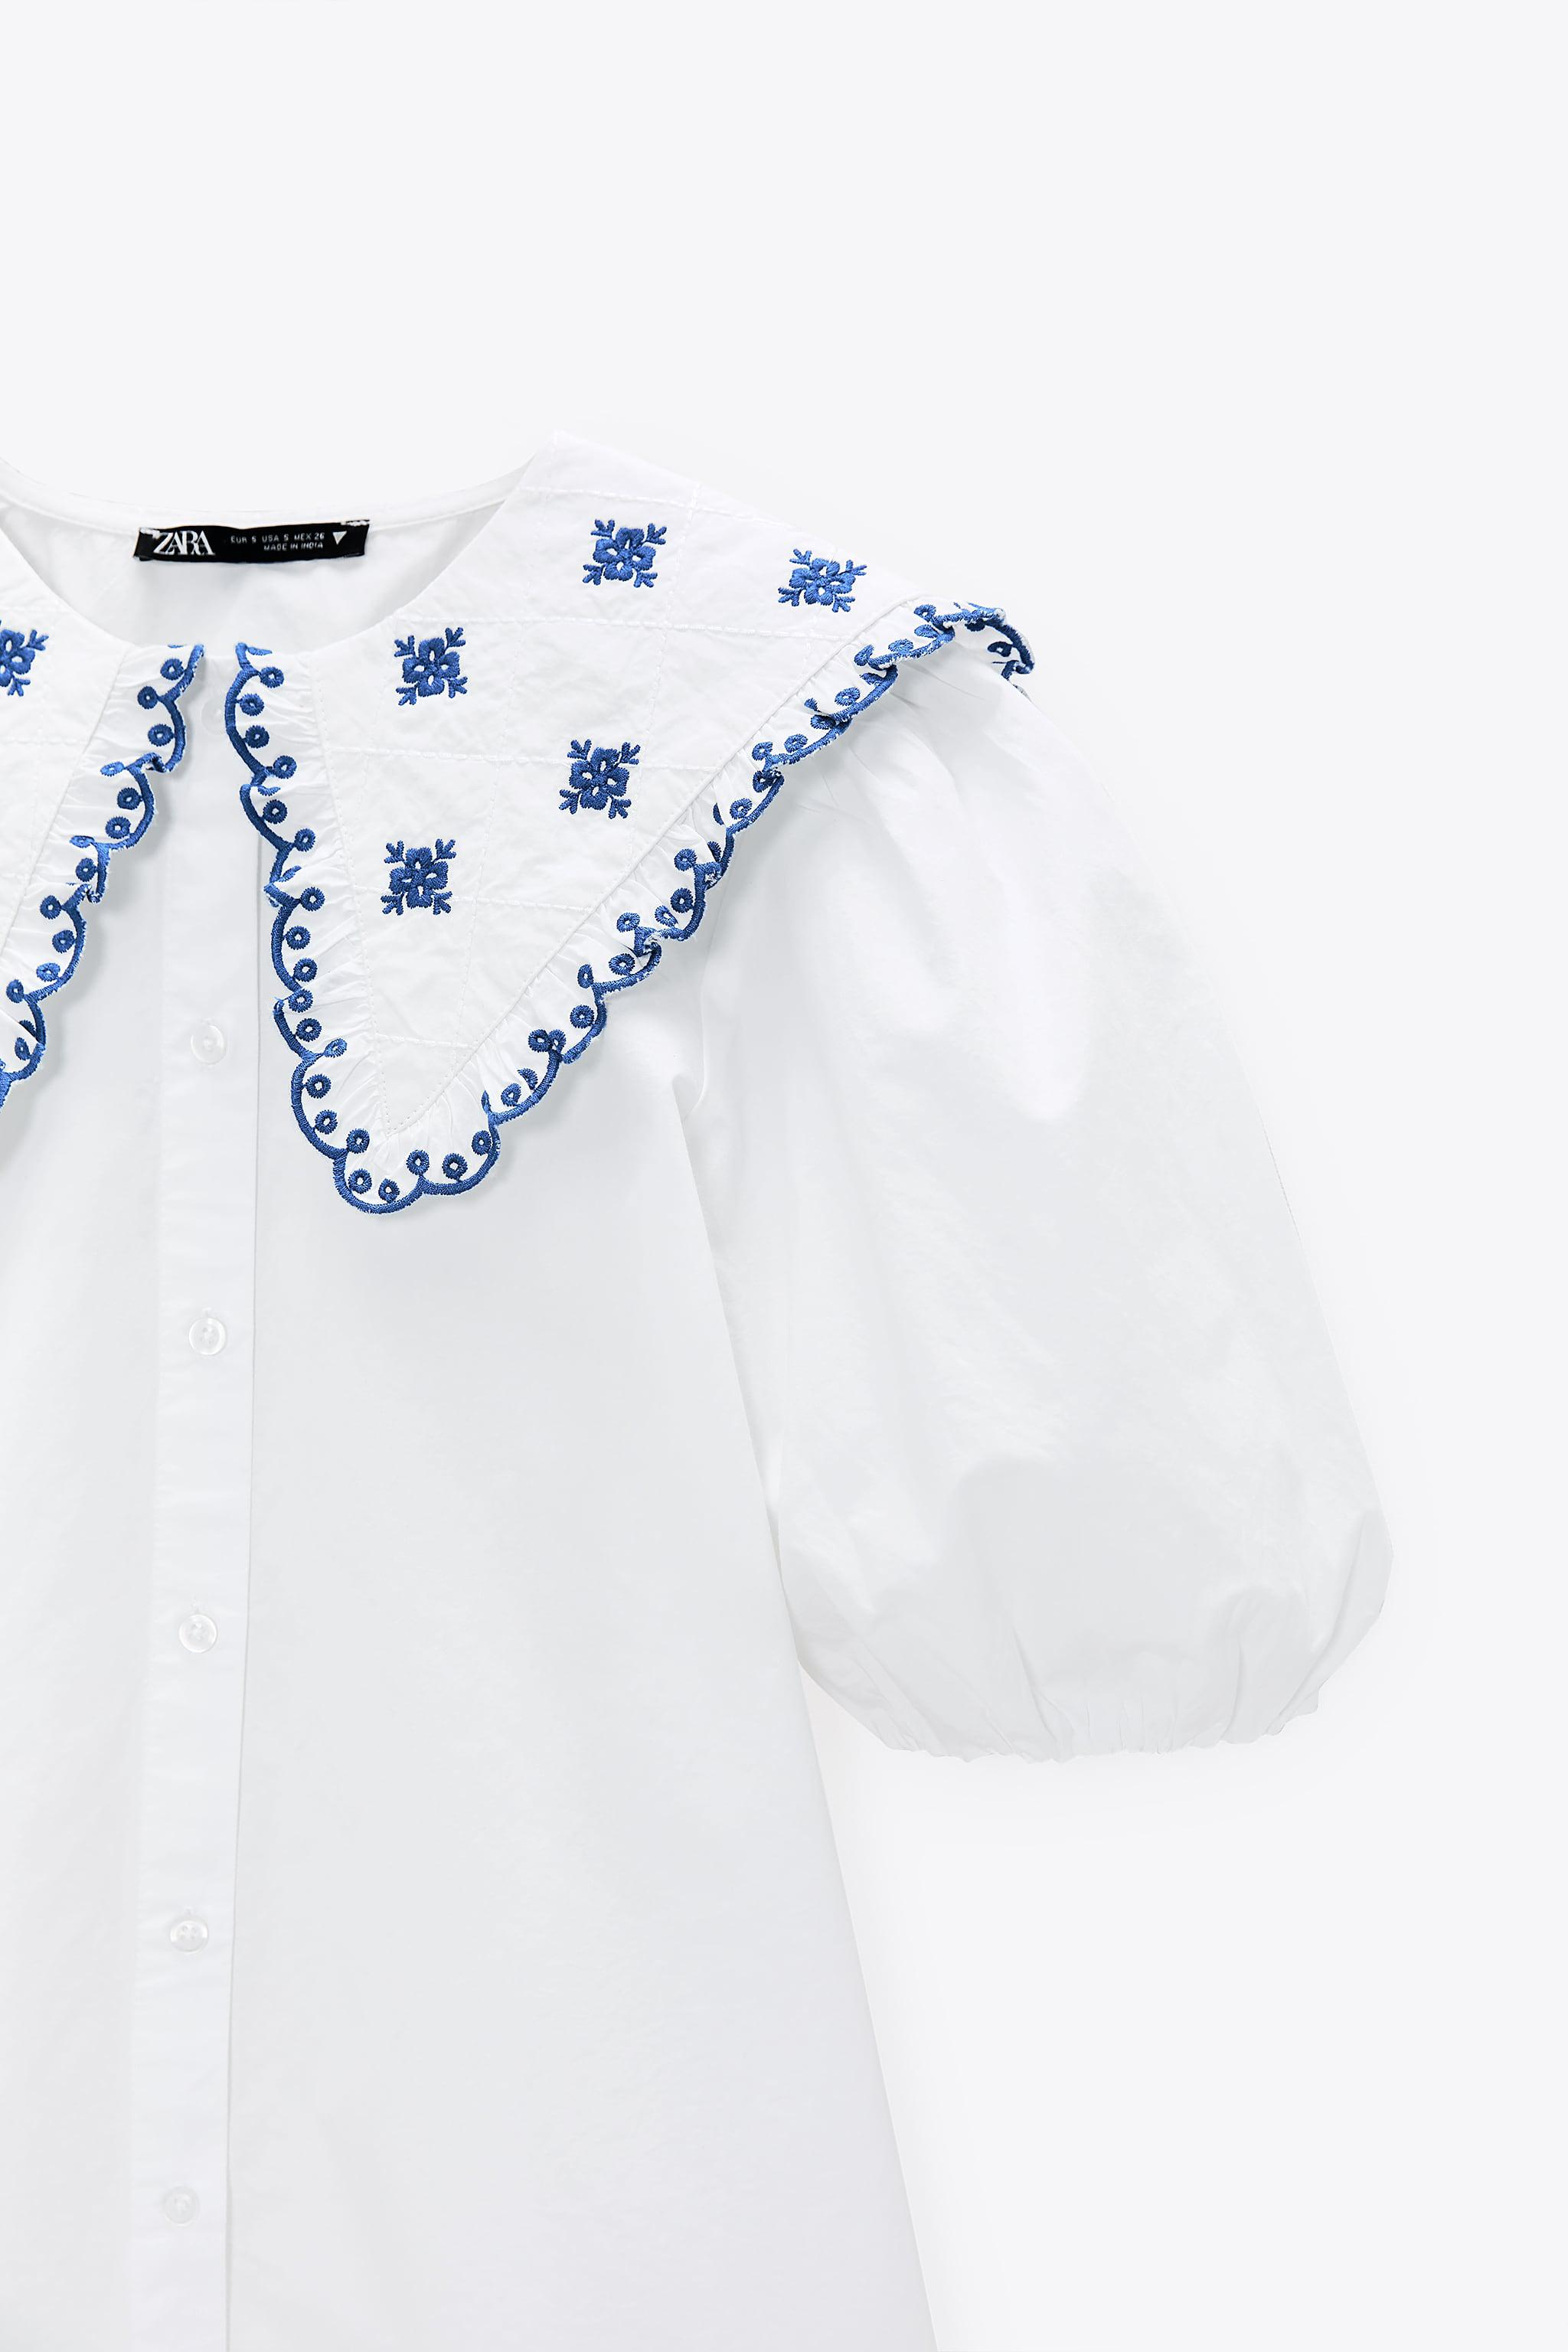 EMBROIDERED POPLIN TOP 7